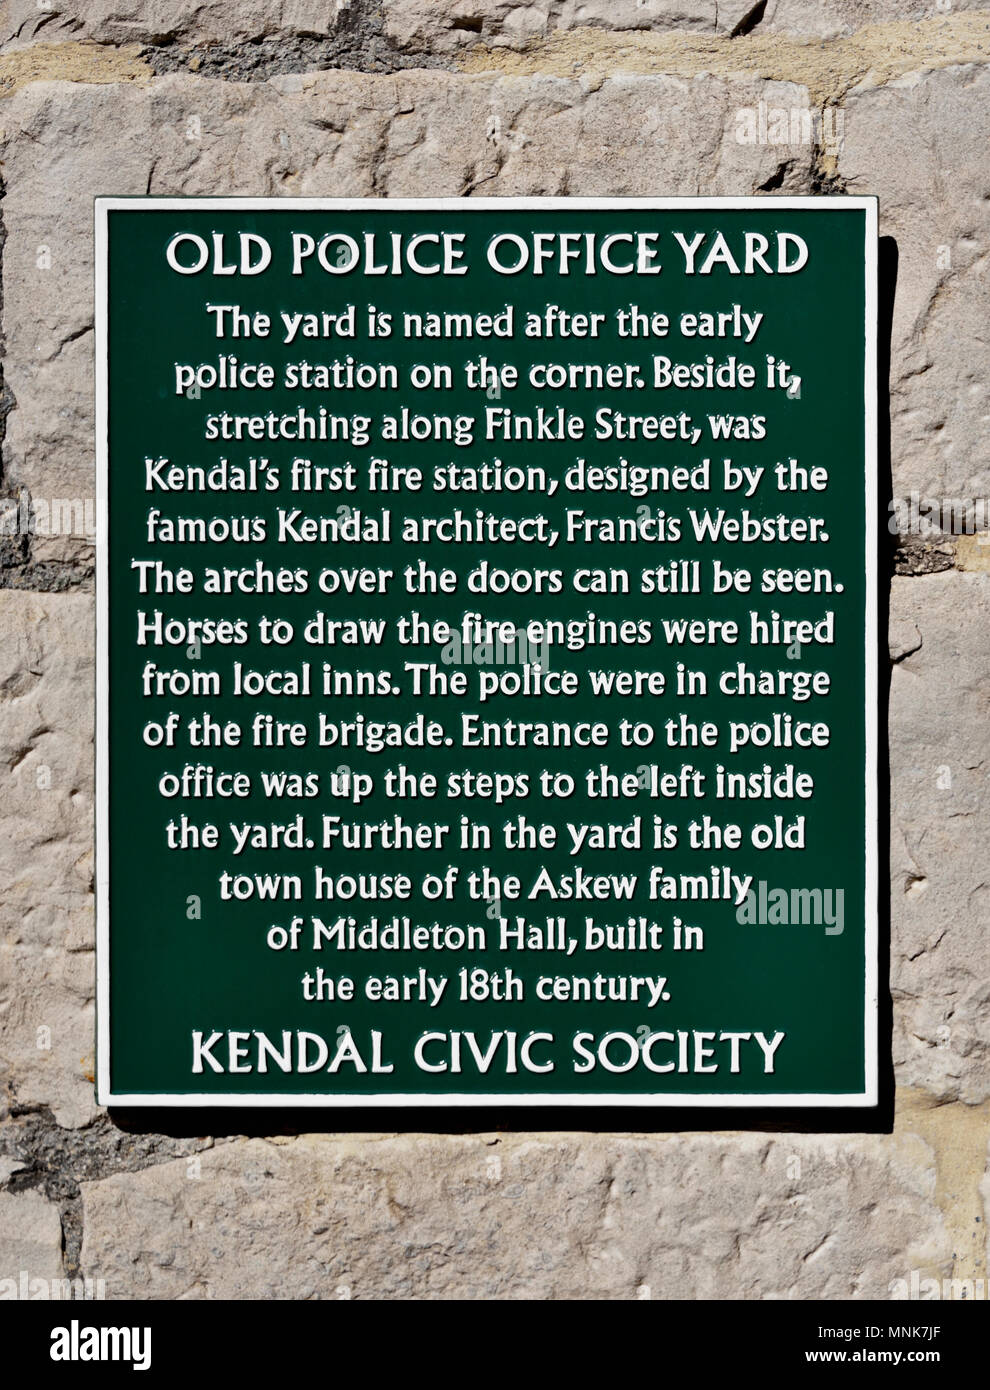 Kendal Civic Society Information Plaque. Old Police Office Yard, Market Place, Kendal, Cumbria, England, United Kingdom, Europe. - Stock Image